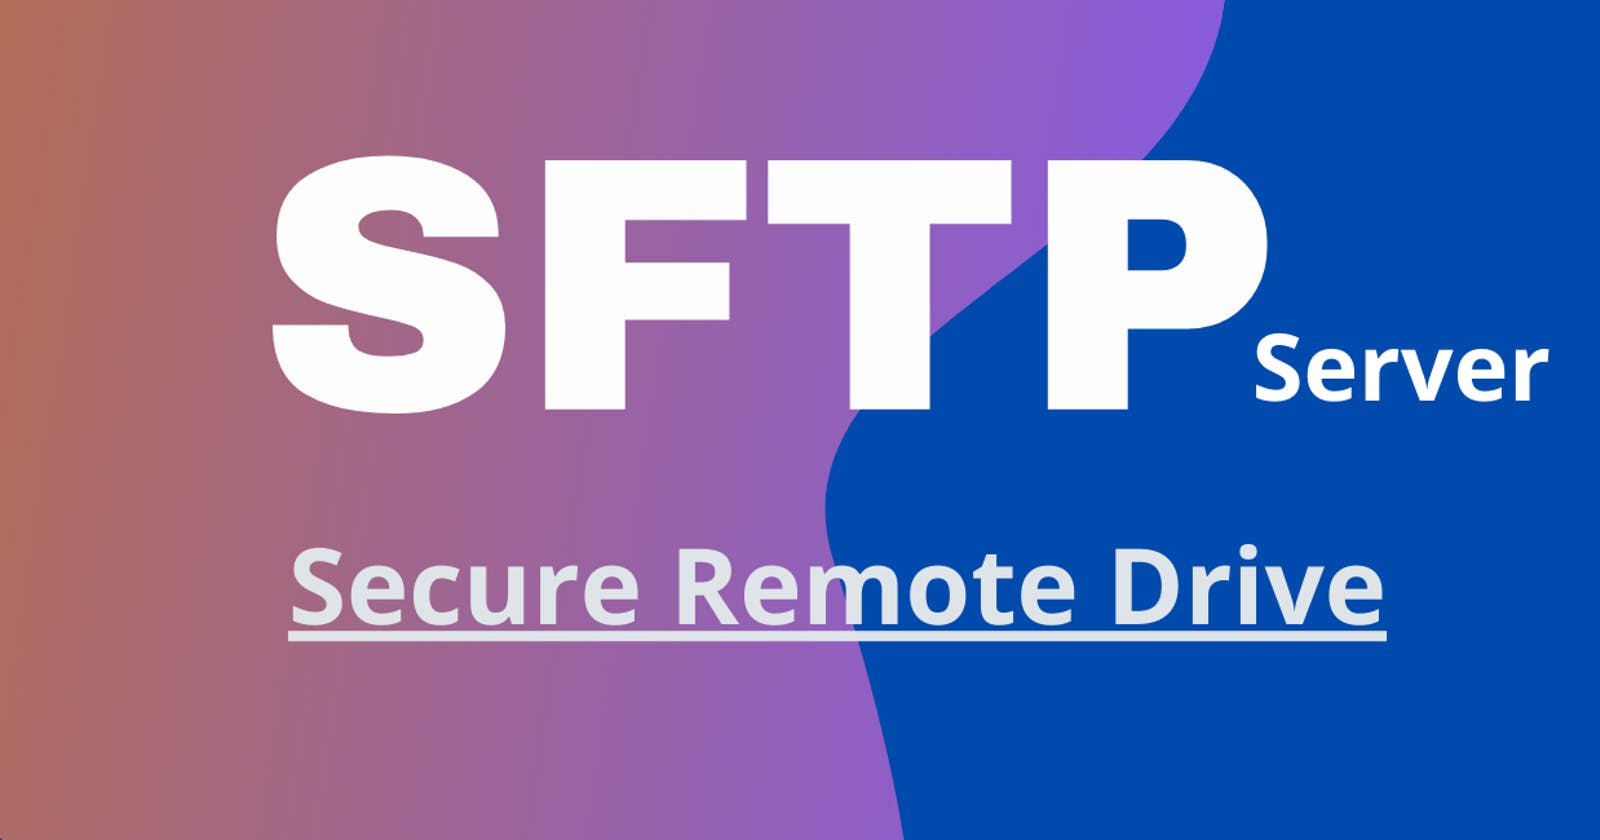 A step-by-step guide to set up an SFTP file transfer server in Linux